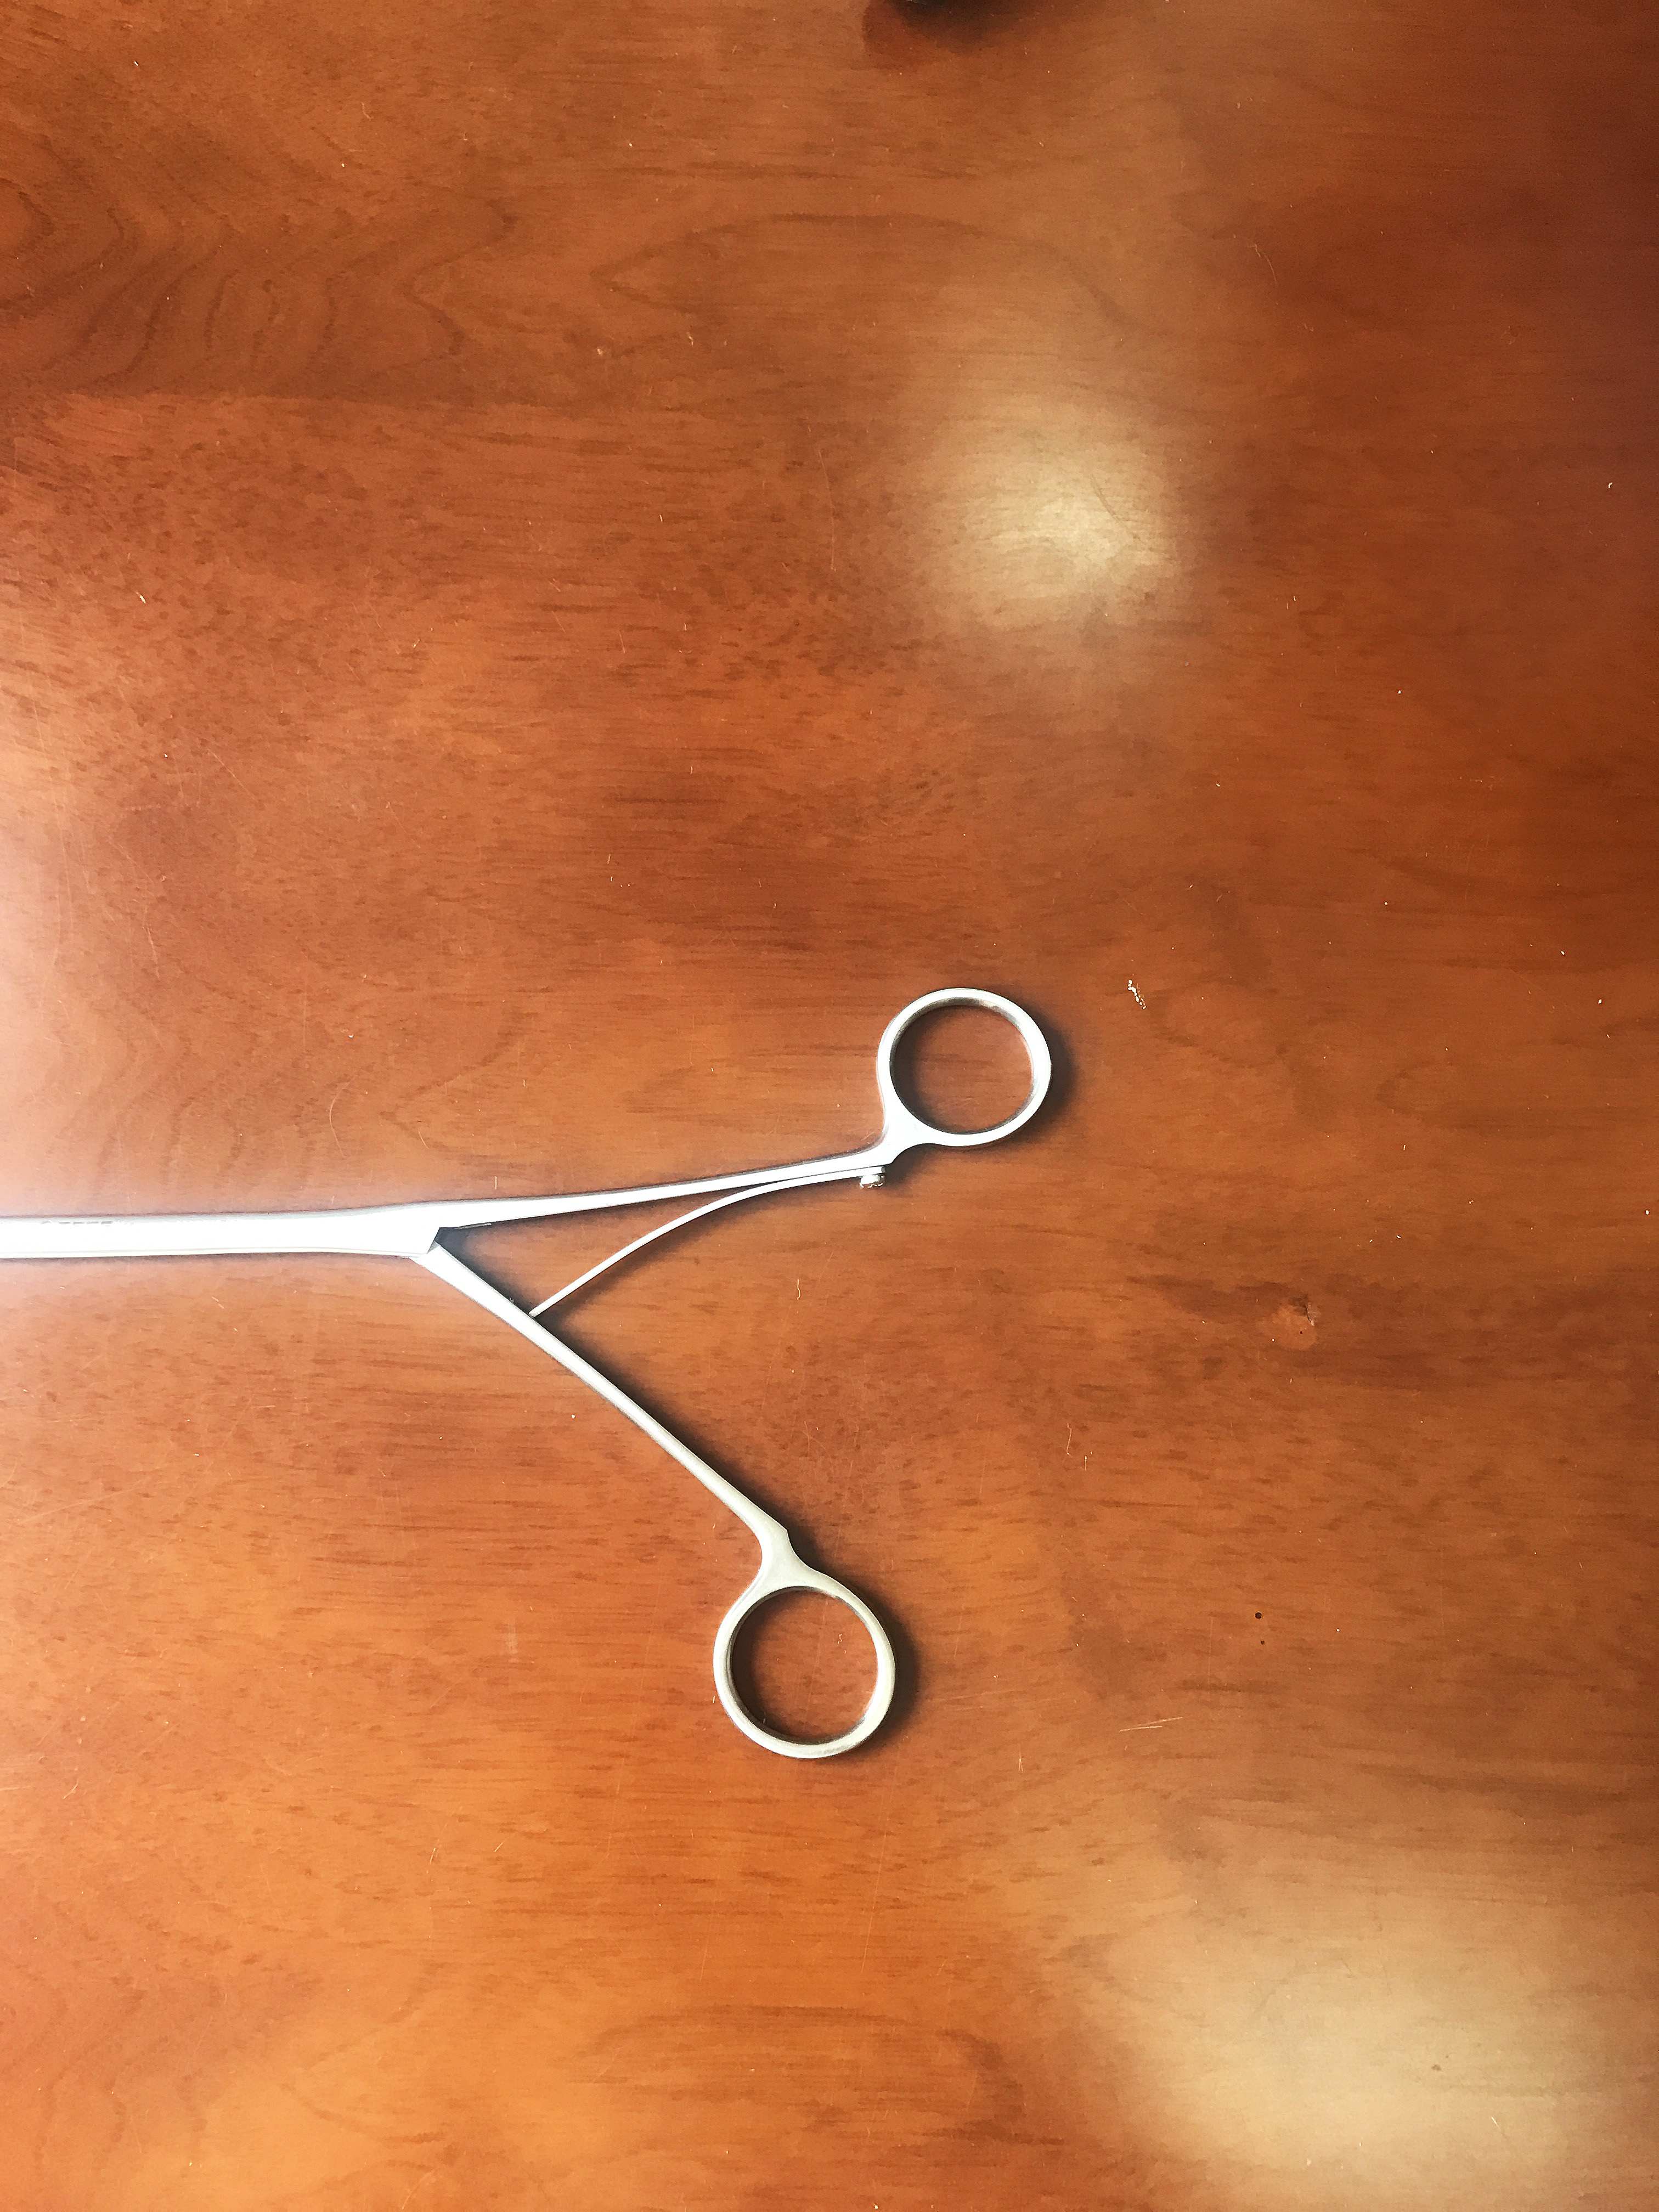 Thoracoscopic instruments double joints forceps surgical thoracoscopic needle holder